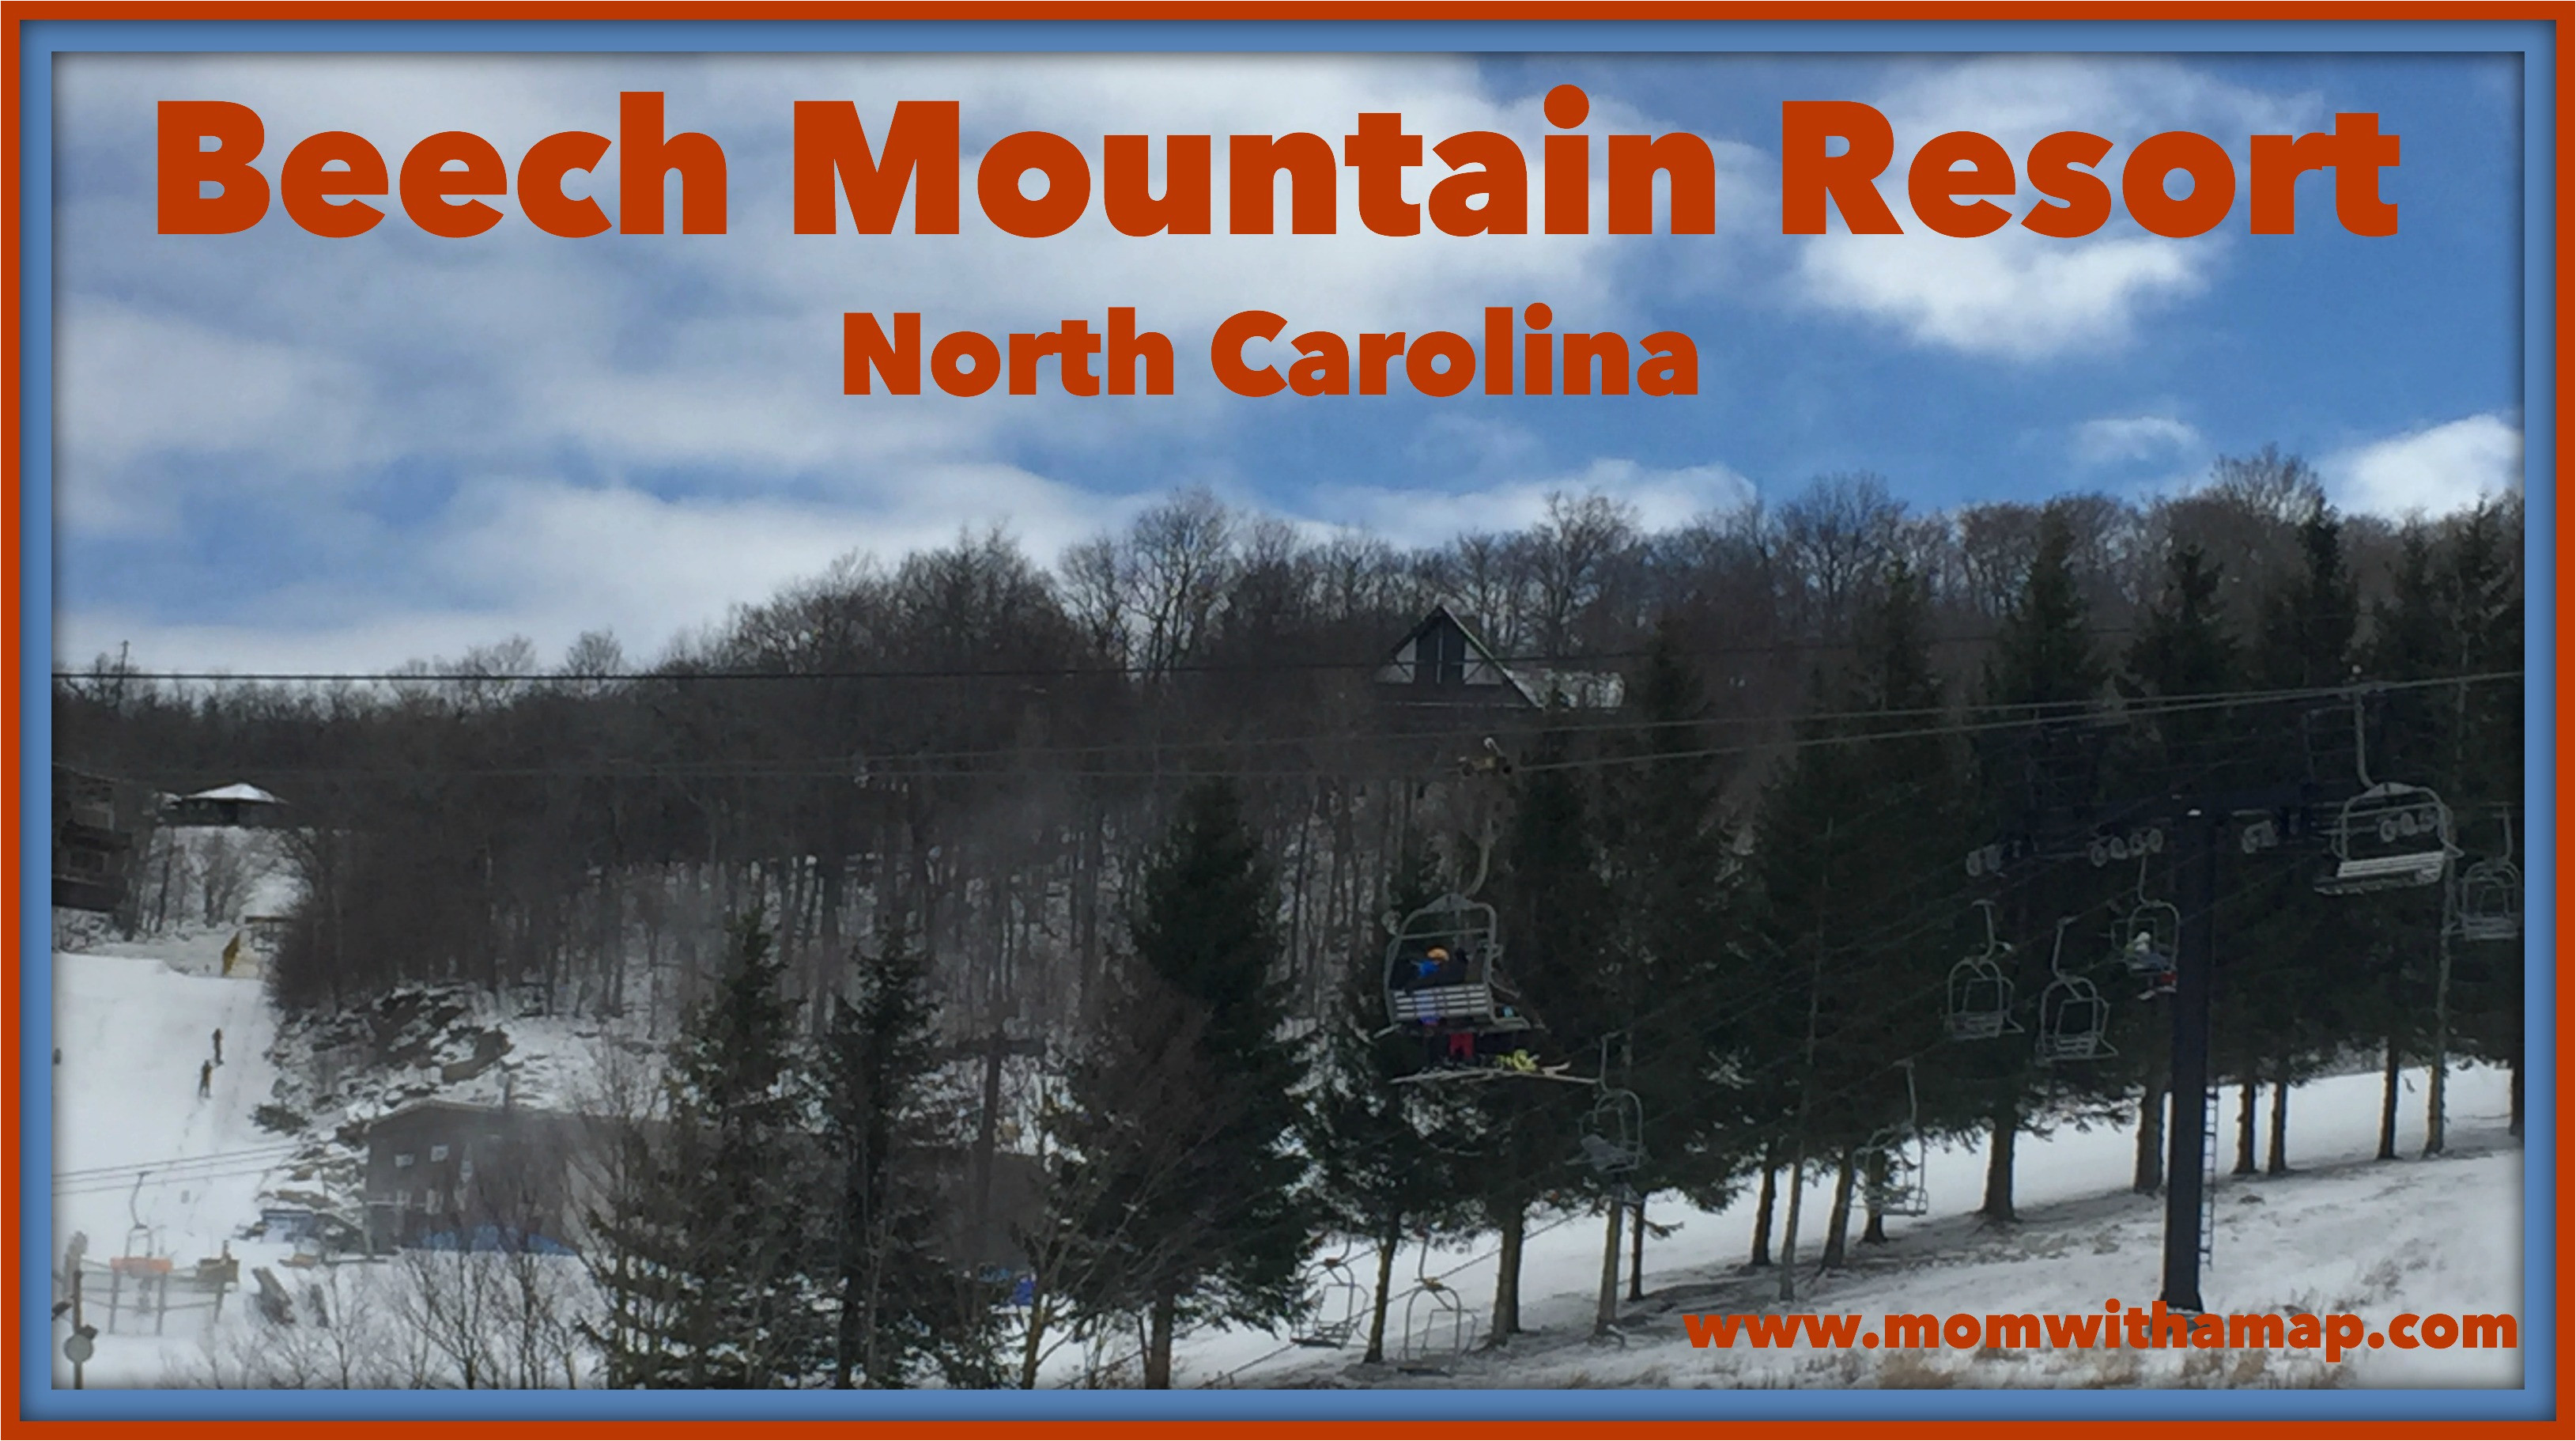 beech mountain resort north carolina